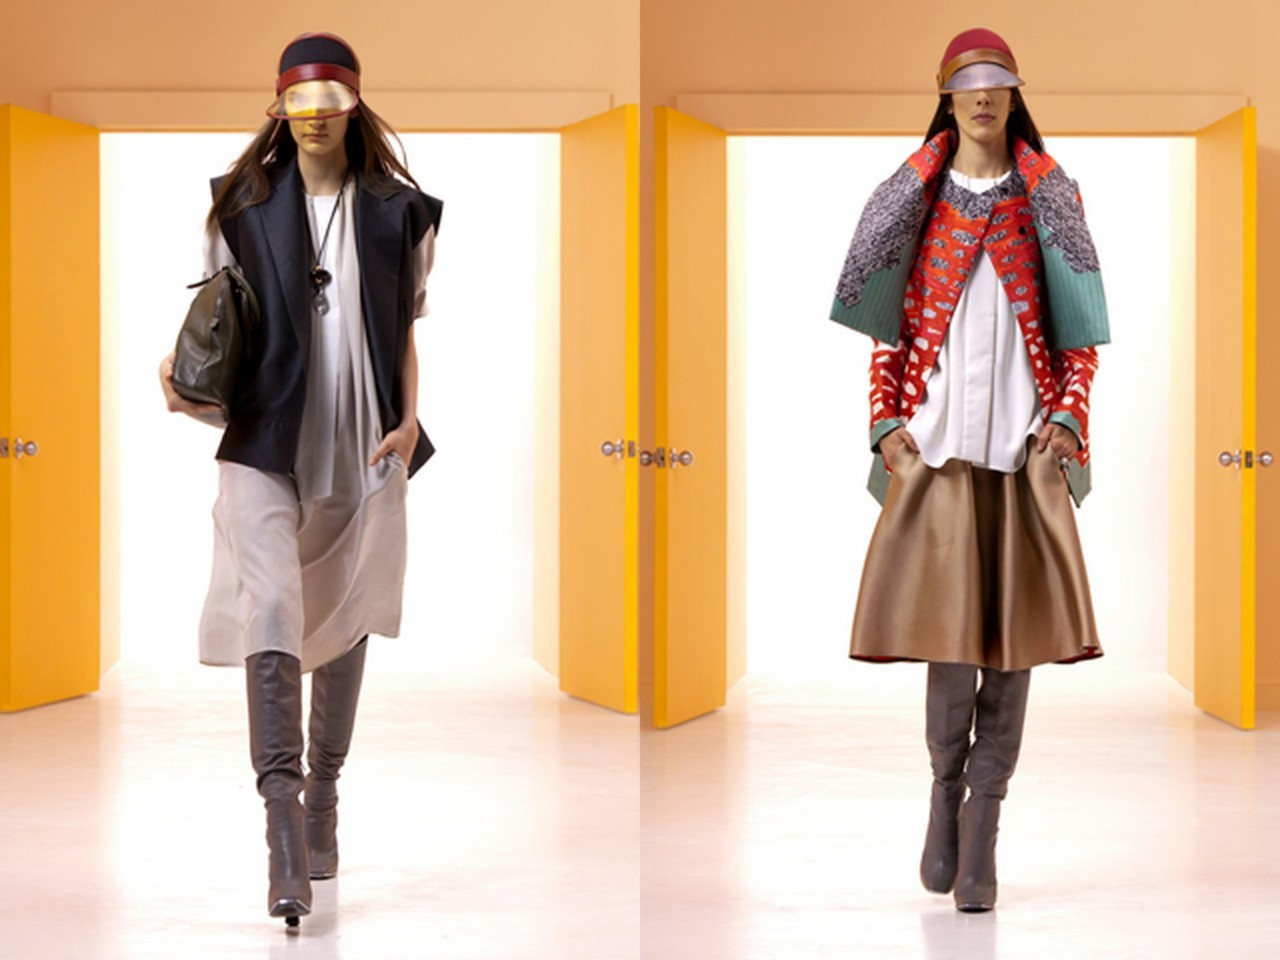 Balenciaga Resort 2012 My two favorite looks from the collection. Perfection. I love how both of these stylings seem like they both originated from the street, but they still carry such sophistication and design. Perfect.